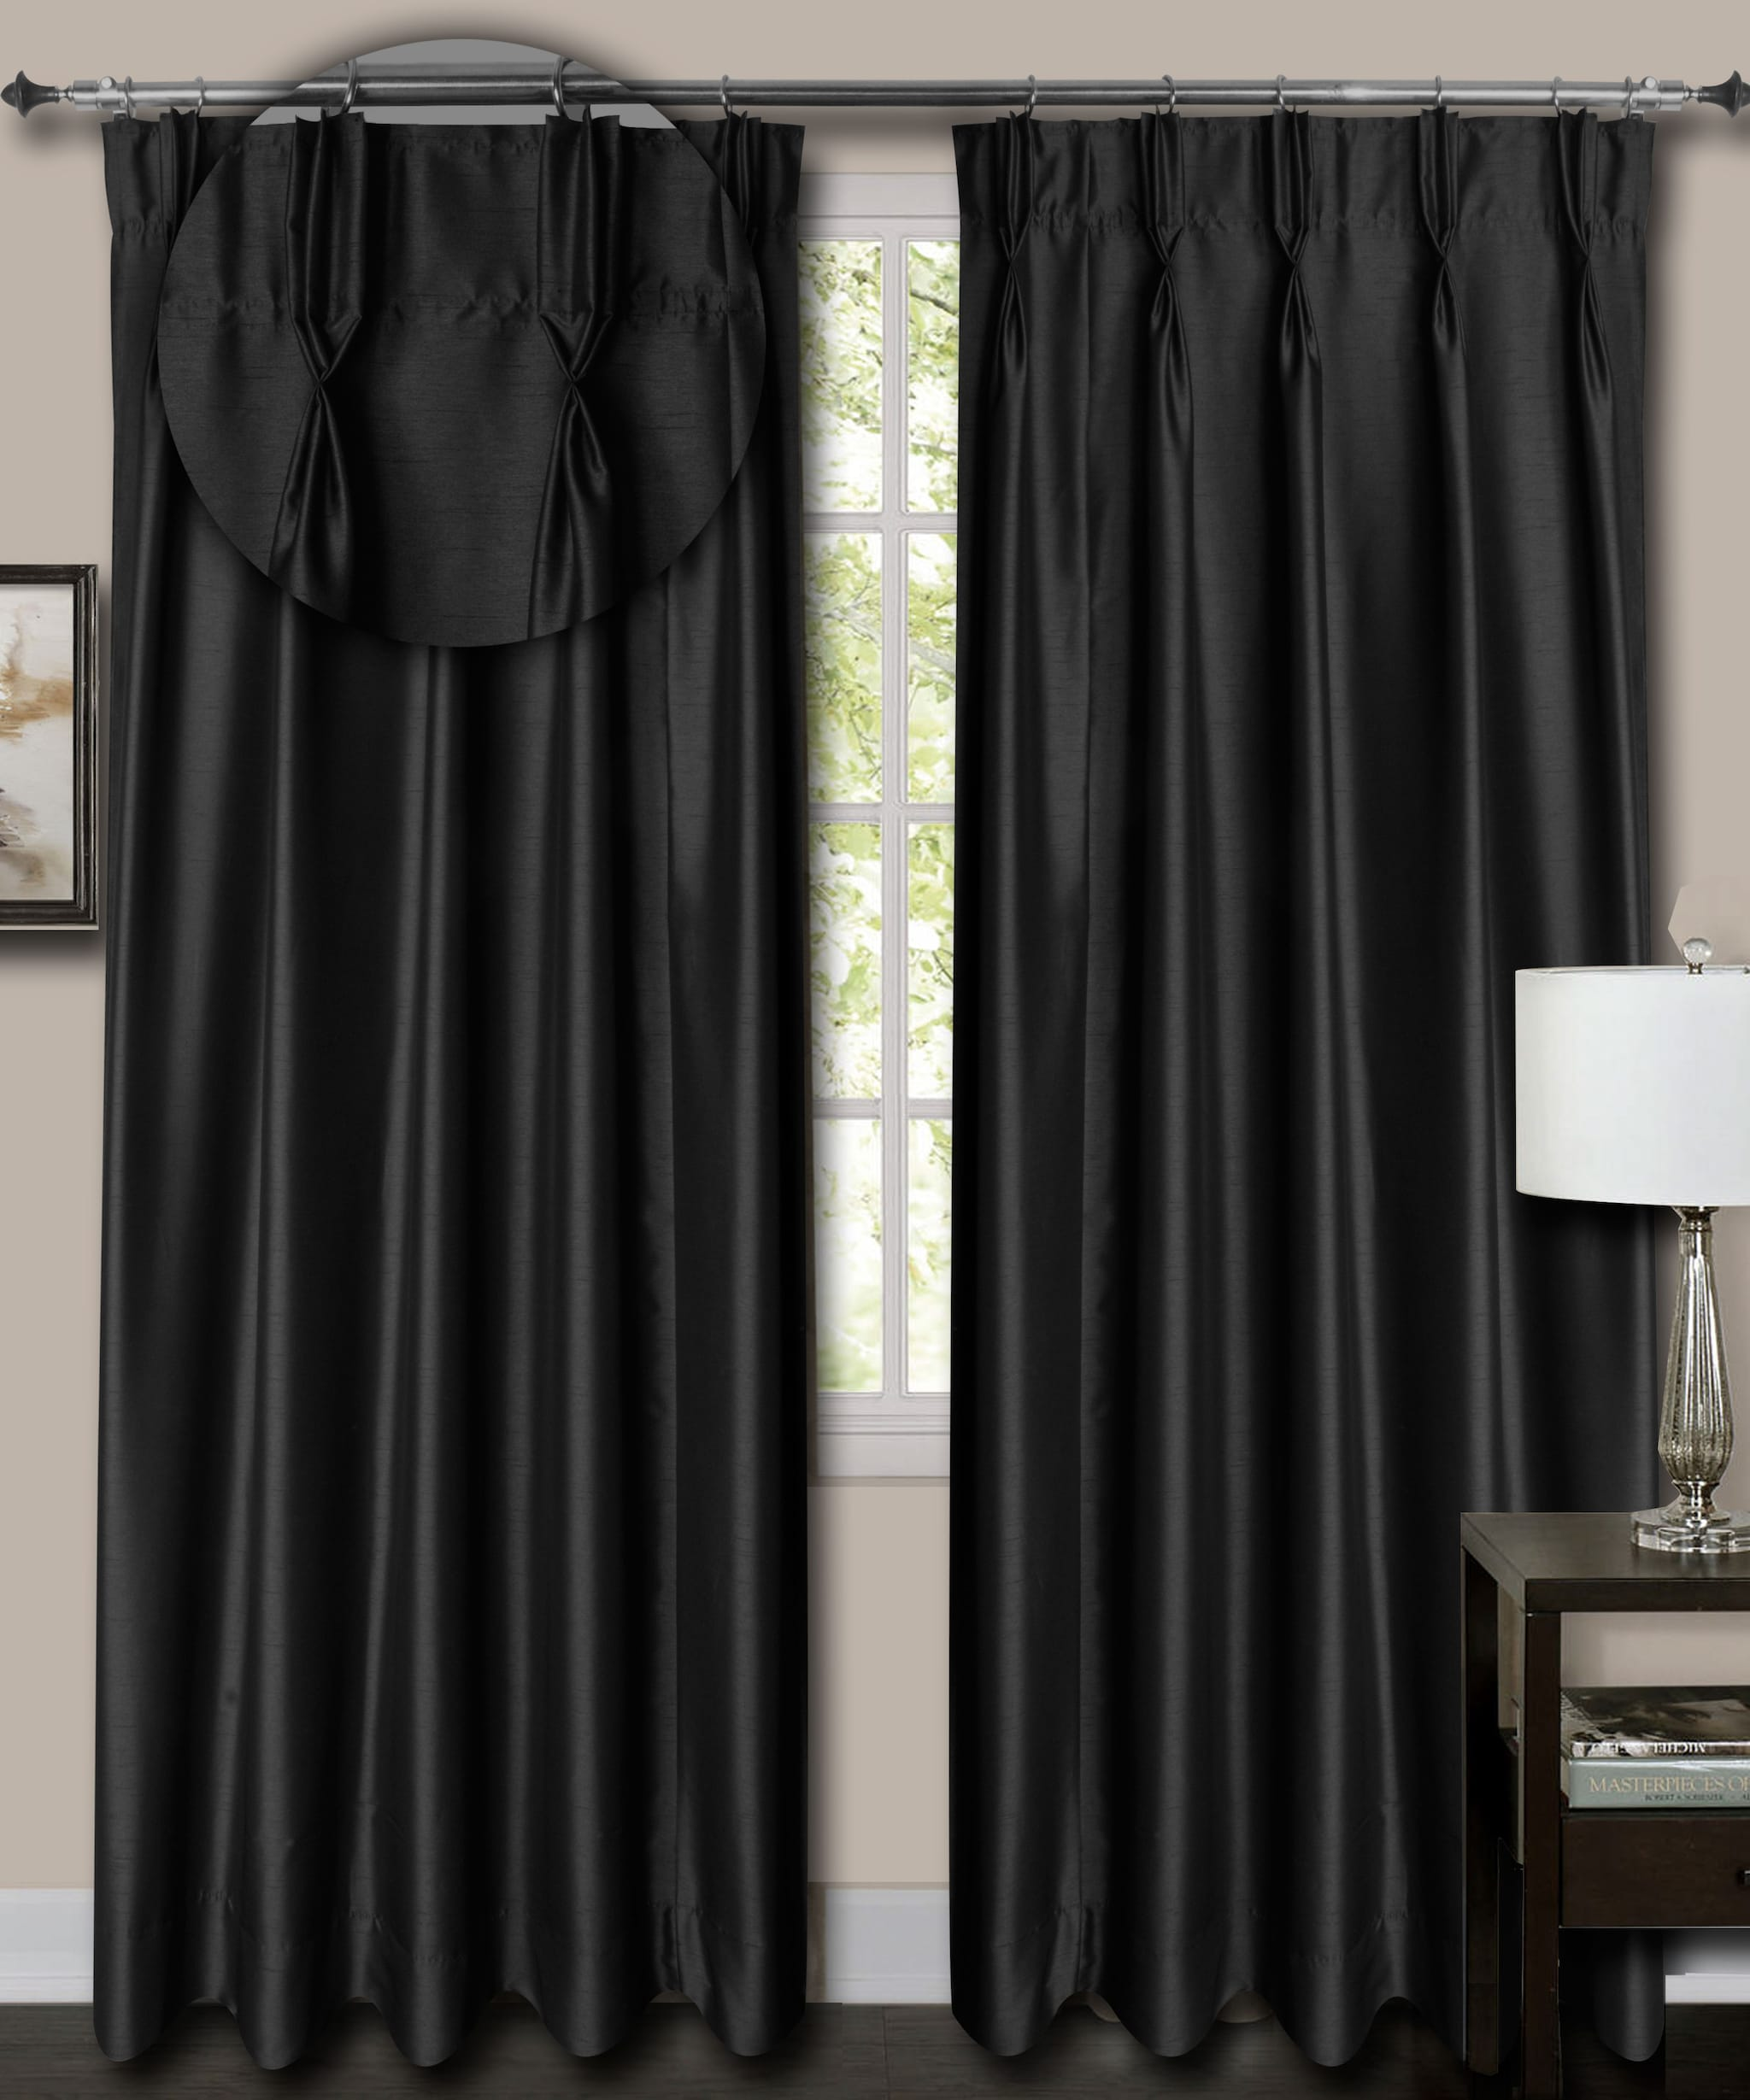 """French Pleat Top Black Faux Silk Dupioni Curtains. (52"""" Wide,14 Feet Long,Blackout Lining)"""